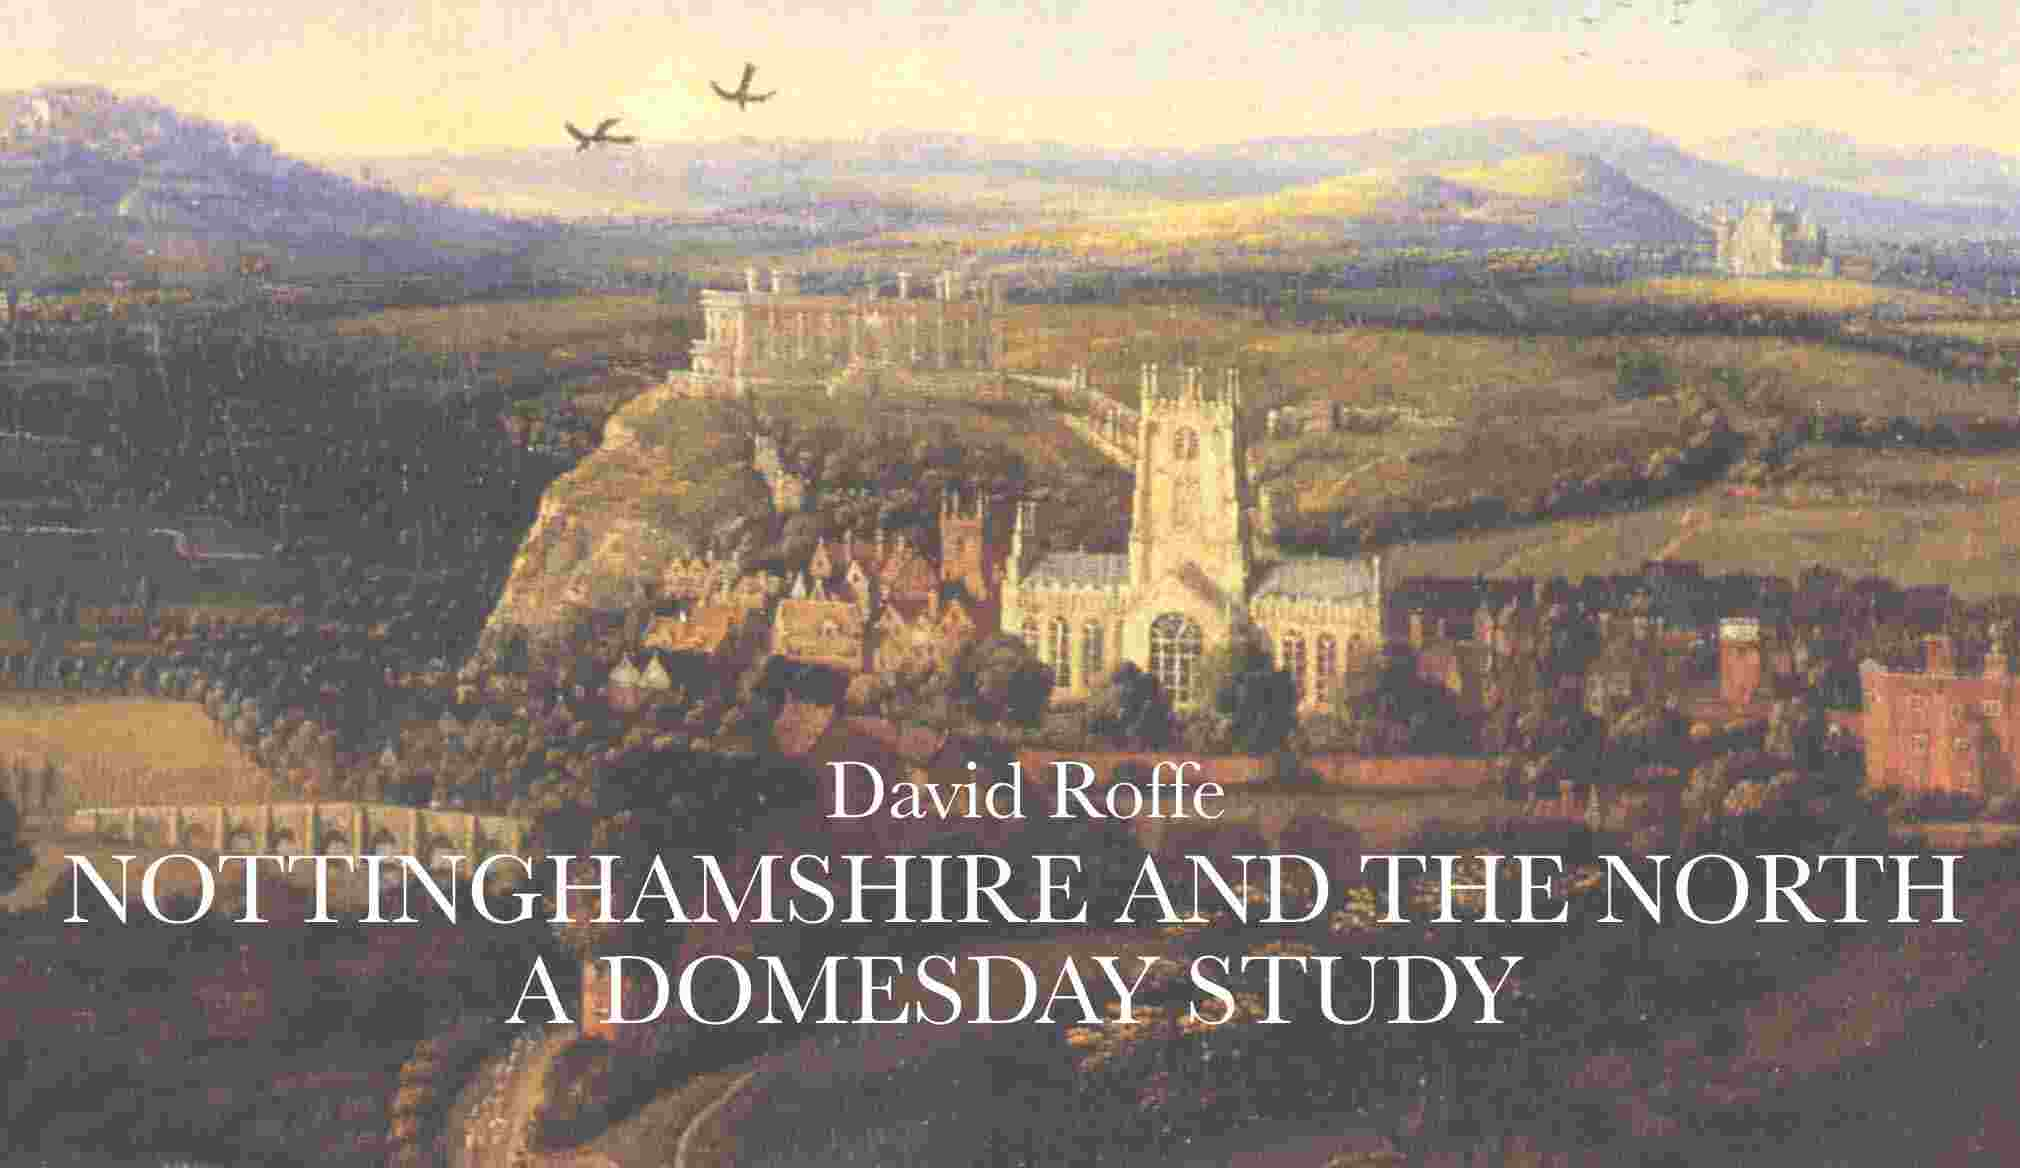 Nottinghamshire and the North: a Domesday study